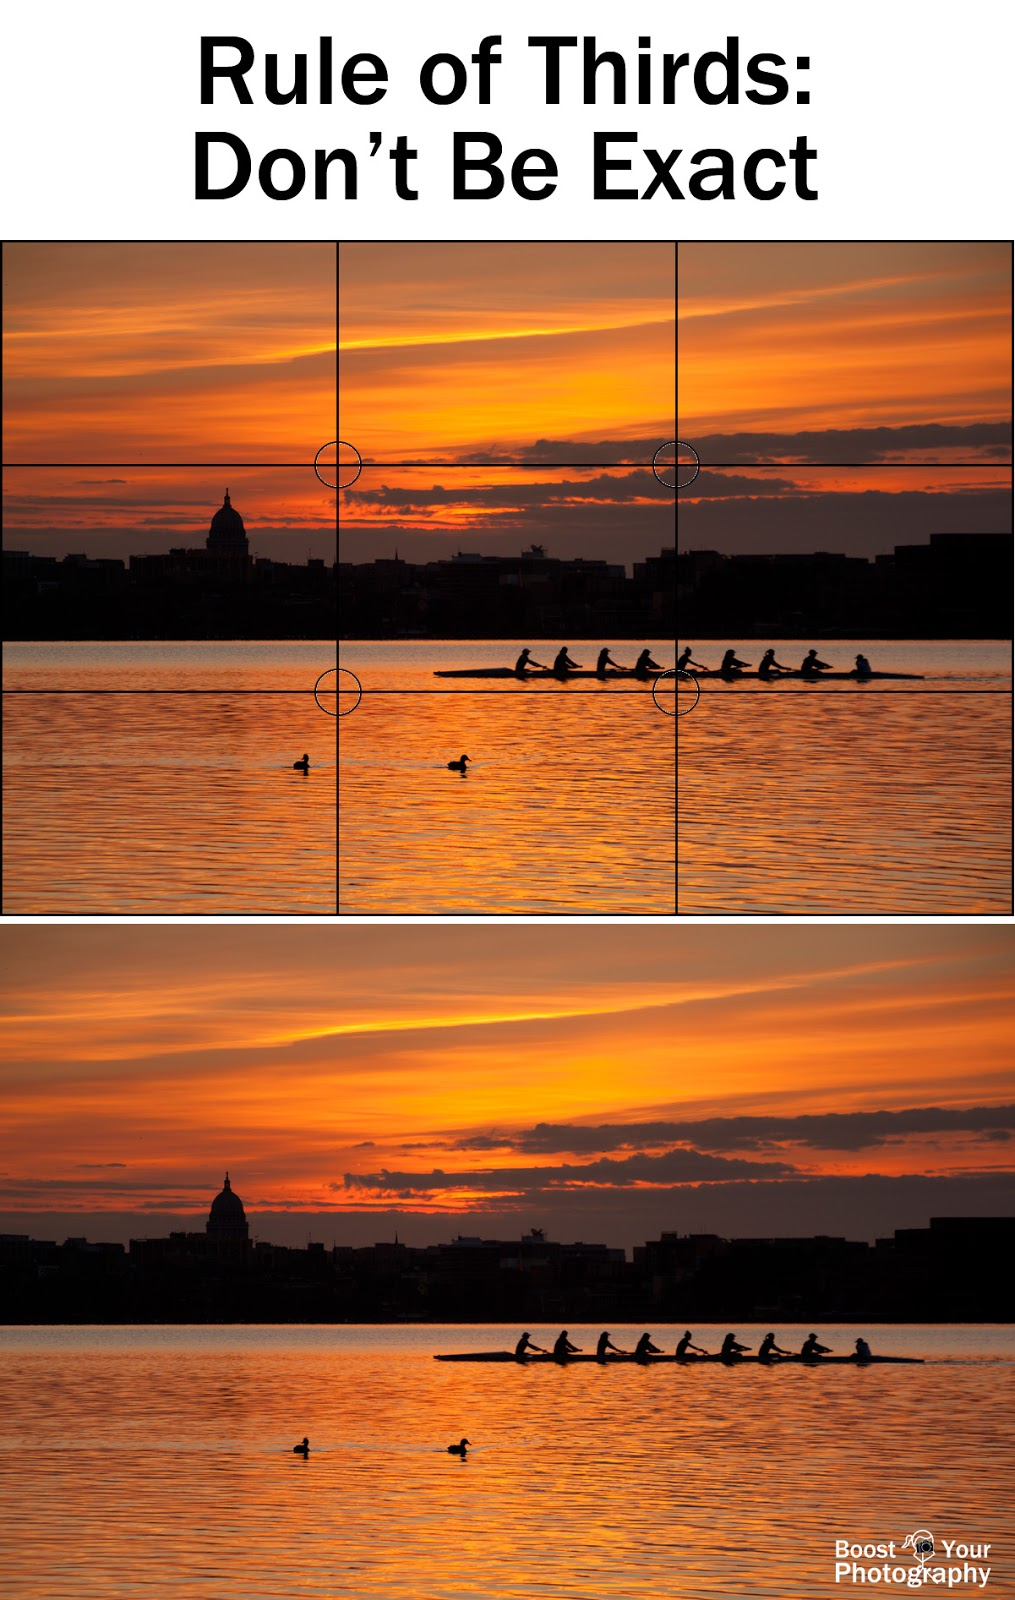 The Rule of Thirds - don't be exact | Boost Your Photography